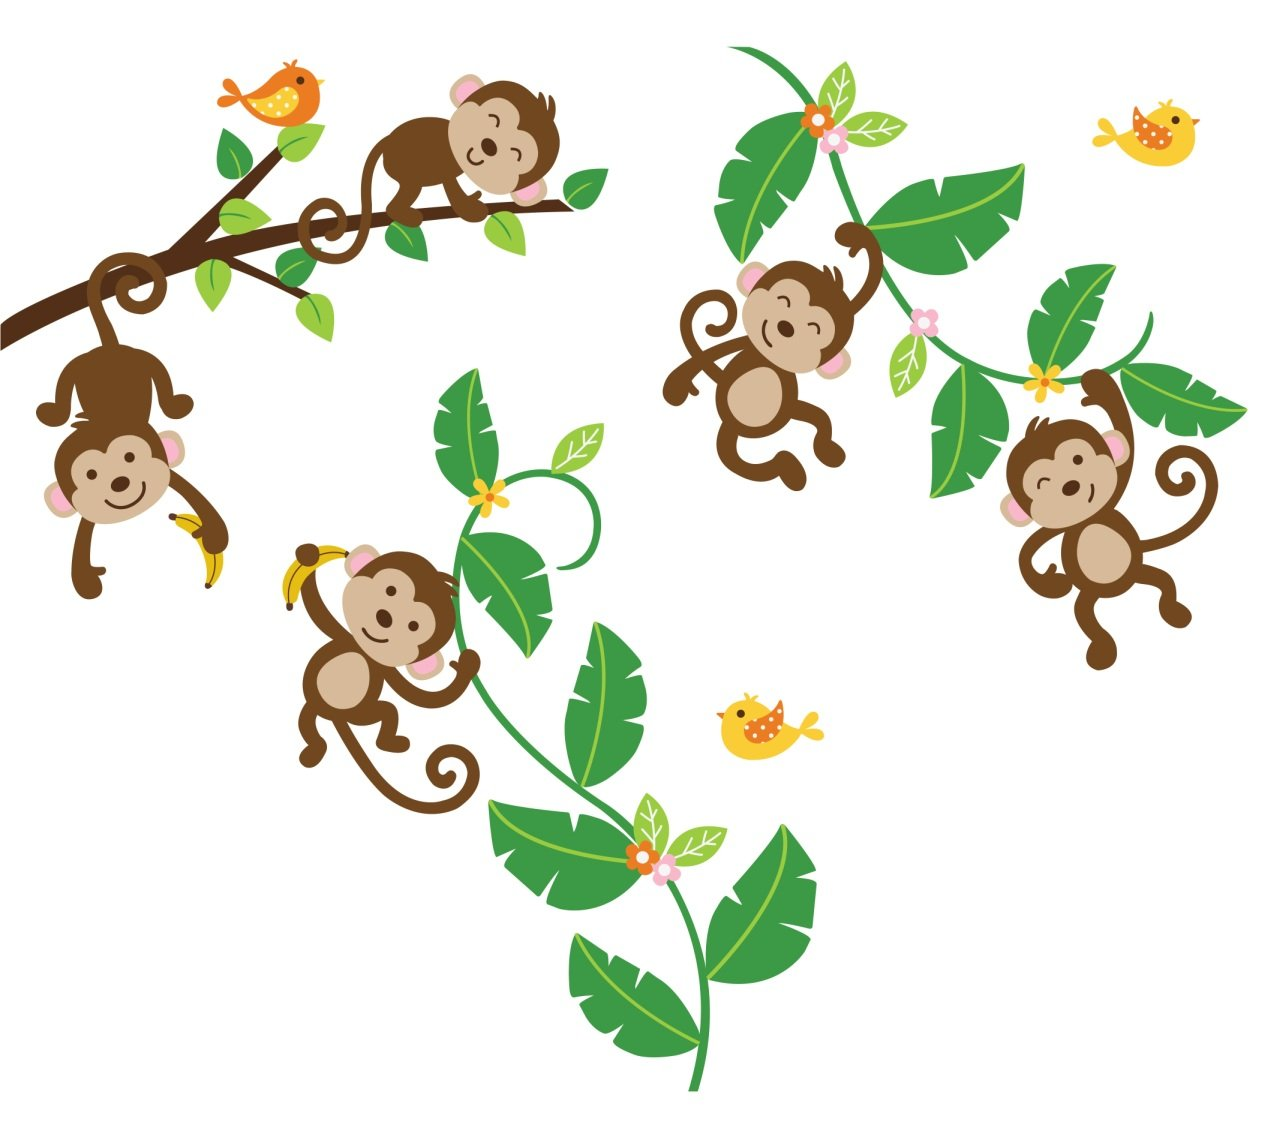 Monkey In A Tree Cartoon Clipart Panda Free Clipart Images Pictures to ...